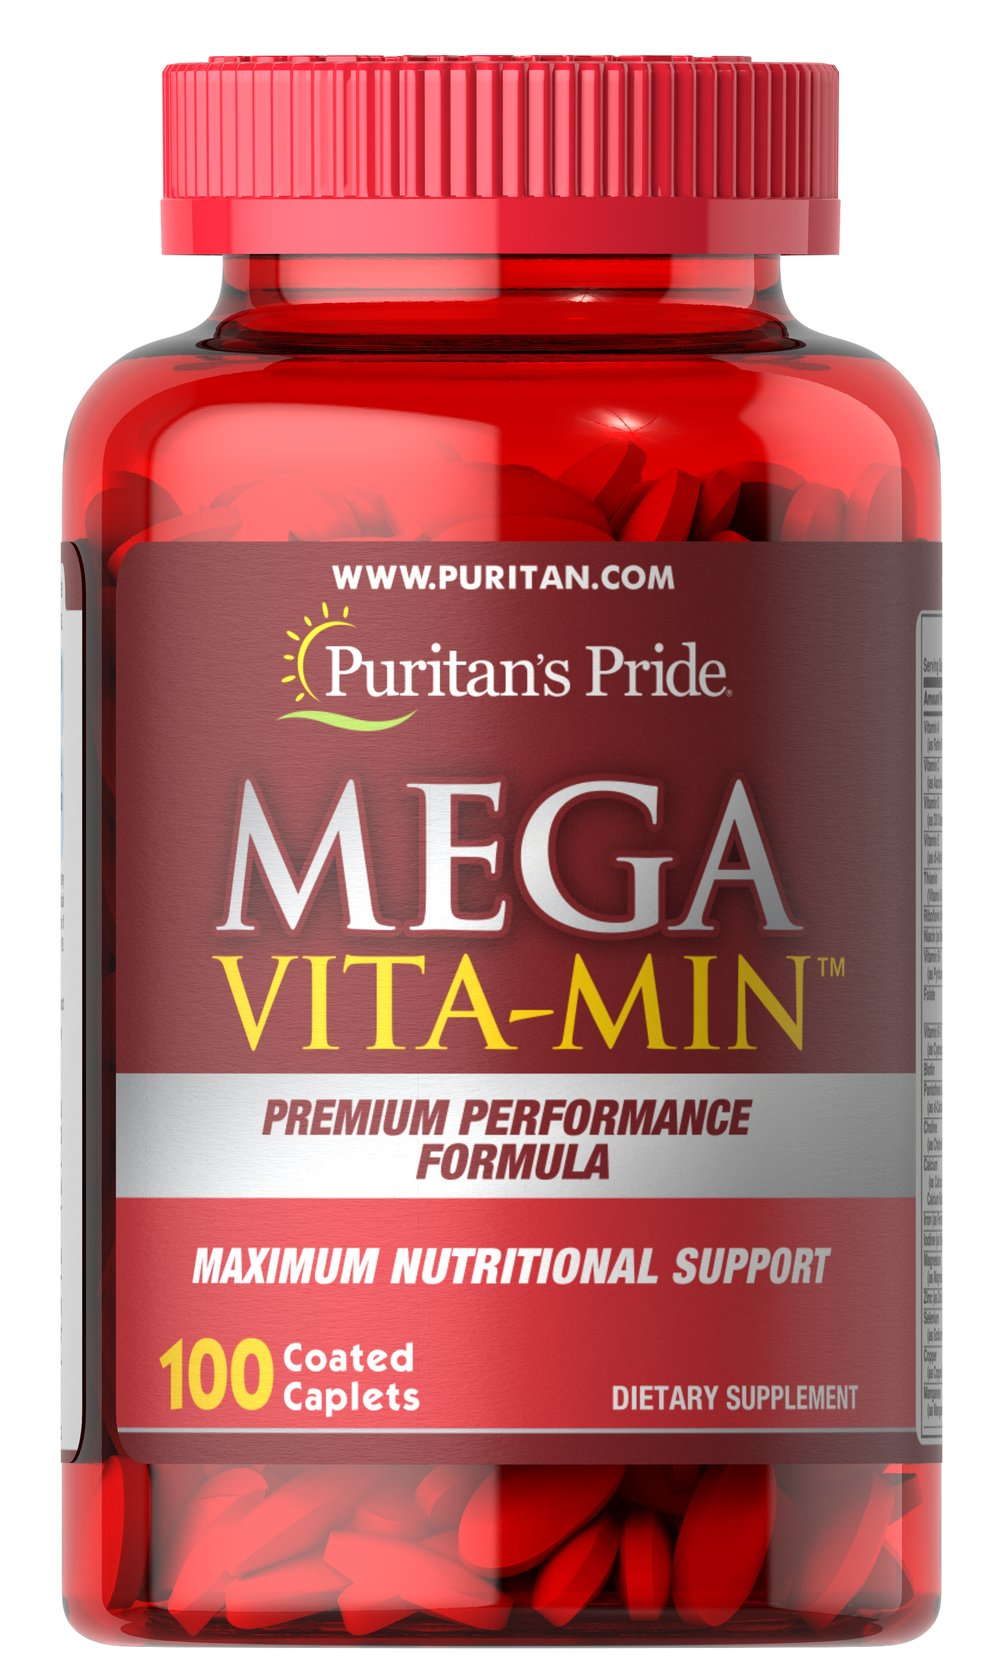 Mega Vita-Min™ Multivitamin <p>MEGA VITA-MIN™ takes the guesswork out of essential vitamin and mineral nutrition, with many active ingredients, including B Vitamins for energy metabolism, and an array of immune and antioxidant support vitamins such as C and E.**</p> 100 Caplets  $31.89